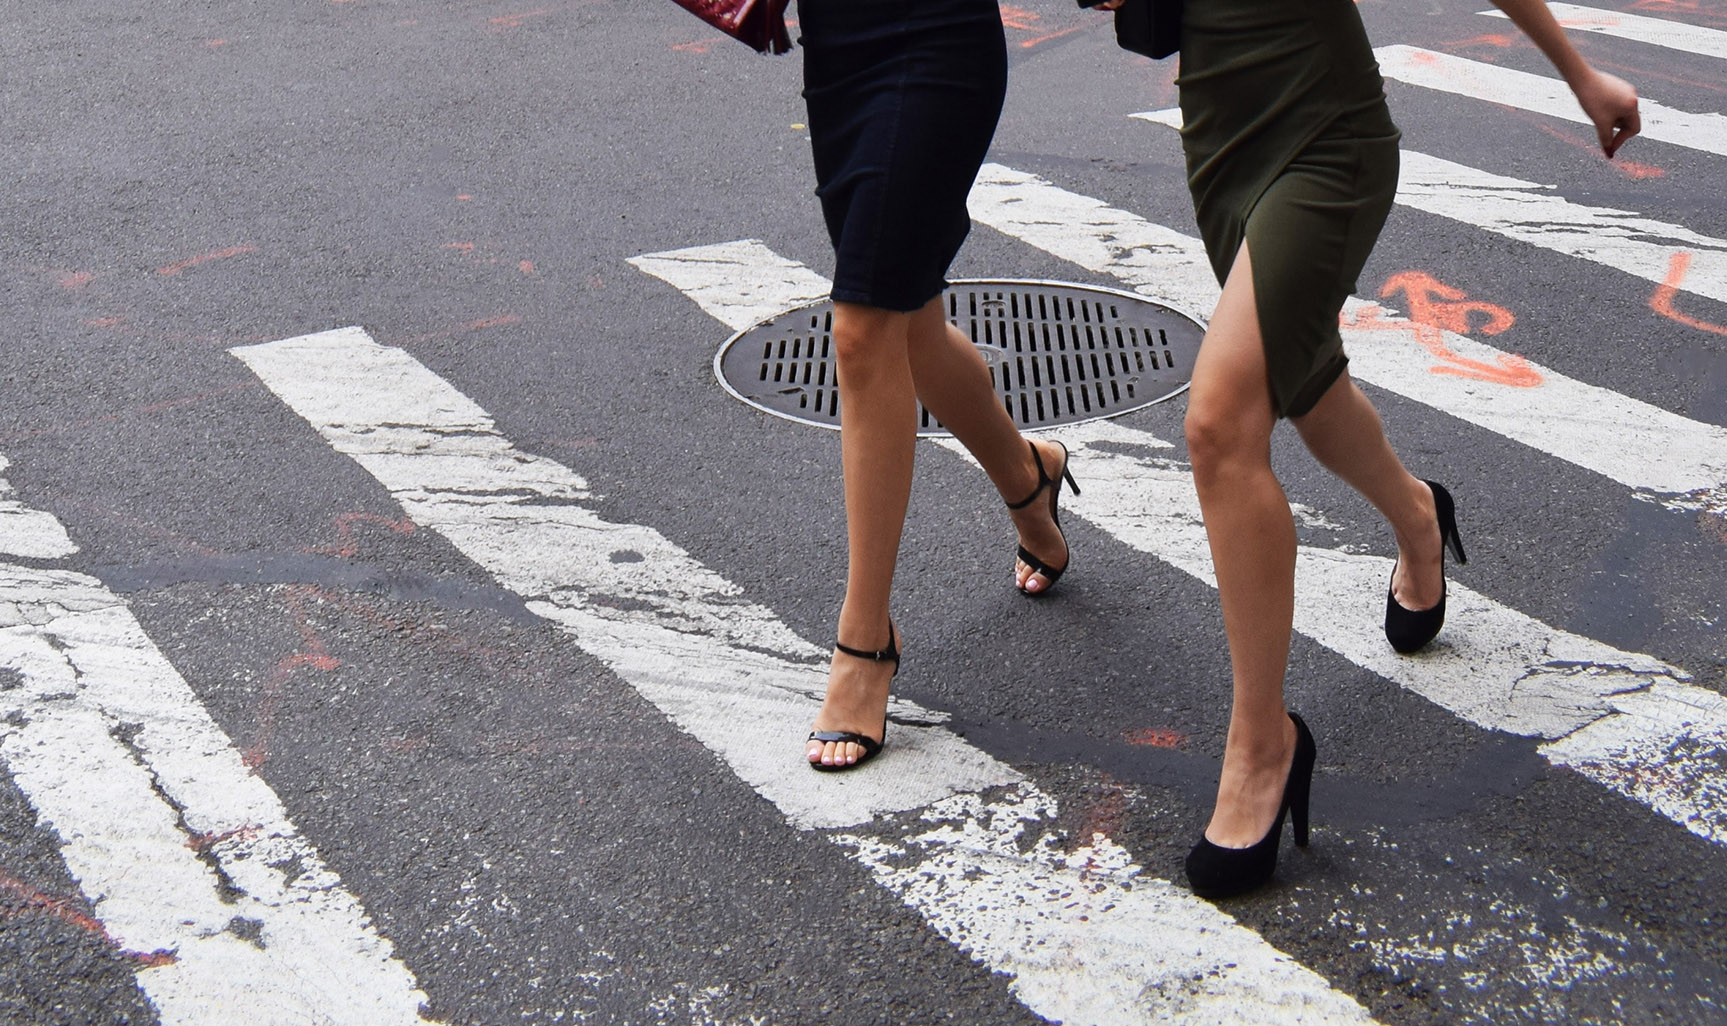 Are Personal Finances The Final Obstacle To Gender Equality?